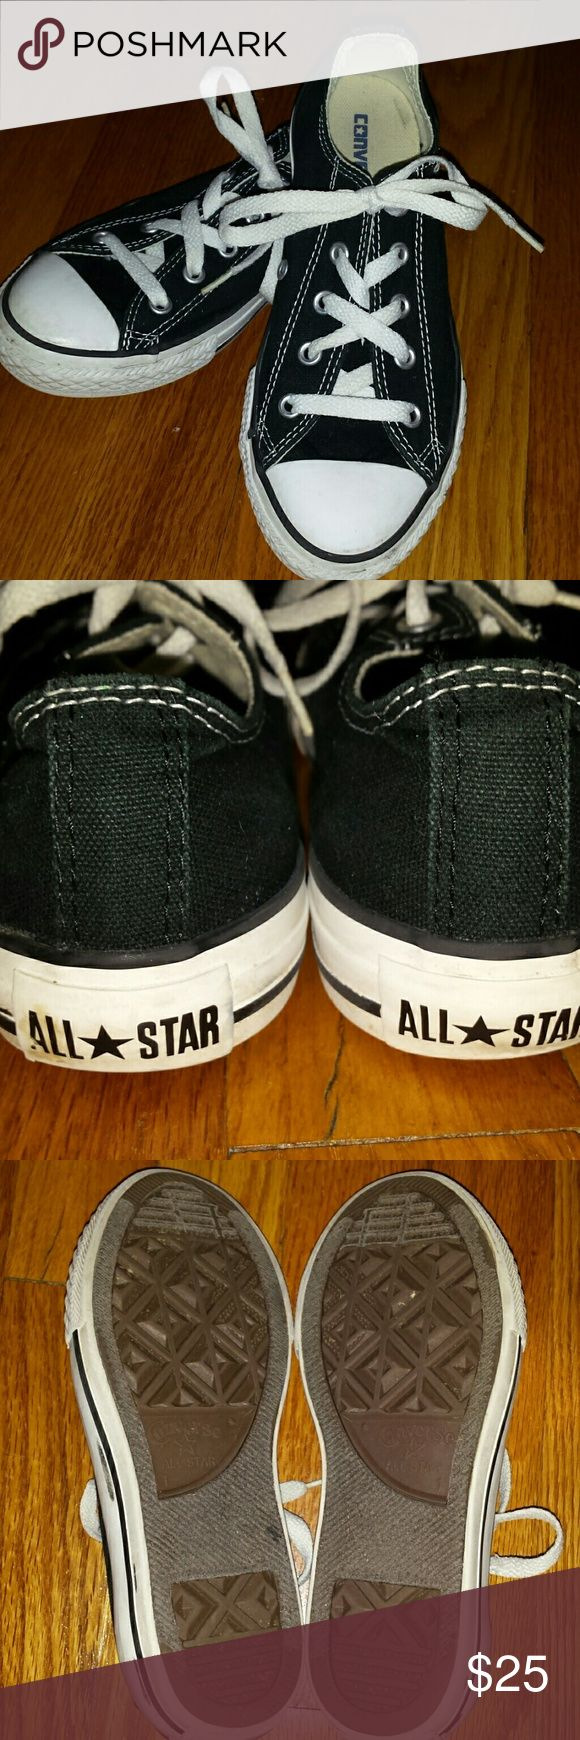 Converse low tops Black Converse low top sneakers size 1 youth. These shoes are in excellent condition. Minor smudges and discoloration to rubber outsole. Minimal wear to heel and sole. Not faded. Pretty clean. Awesome. Converse Shoes Sneakers